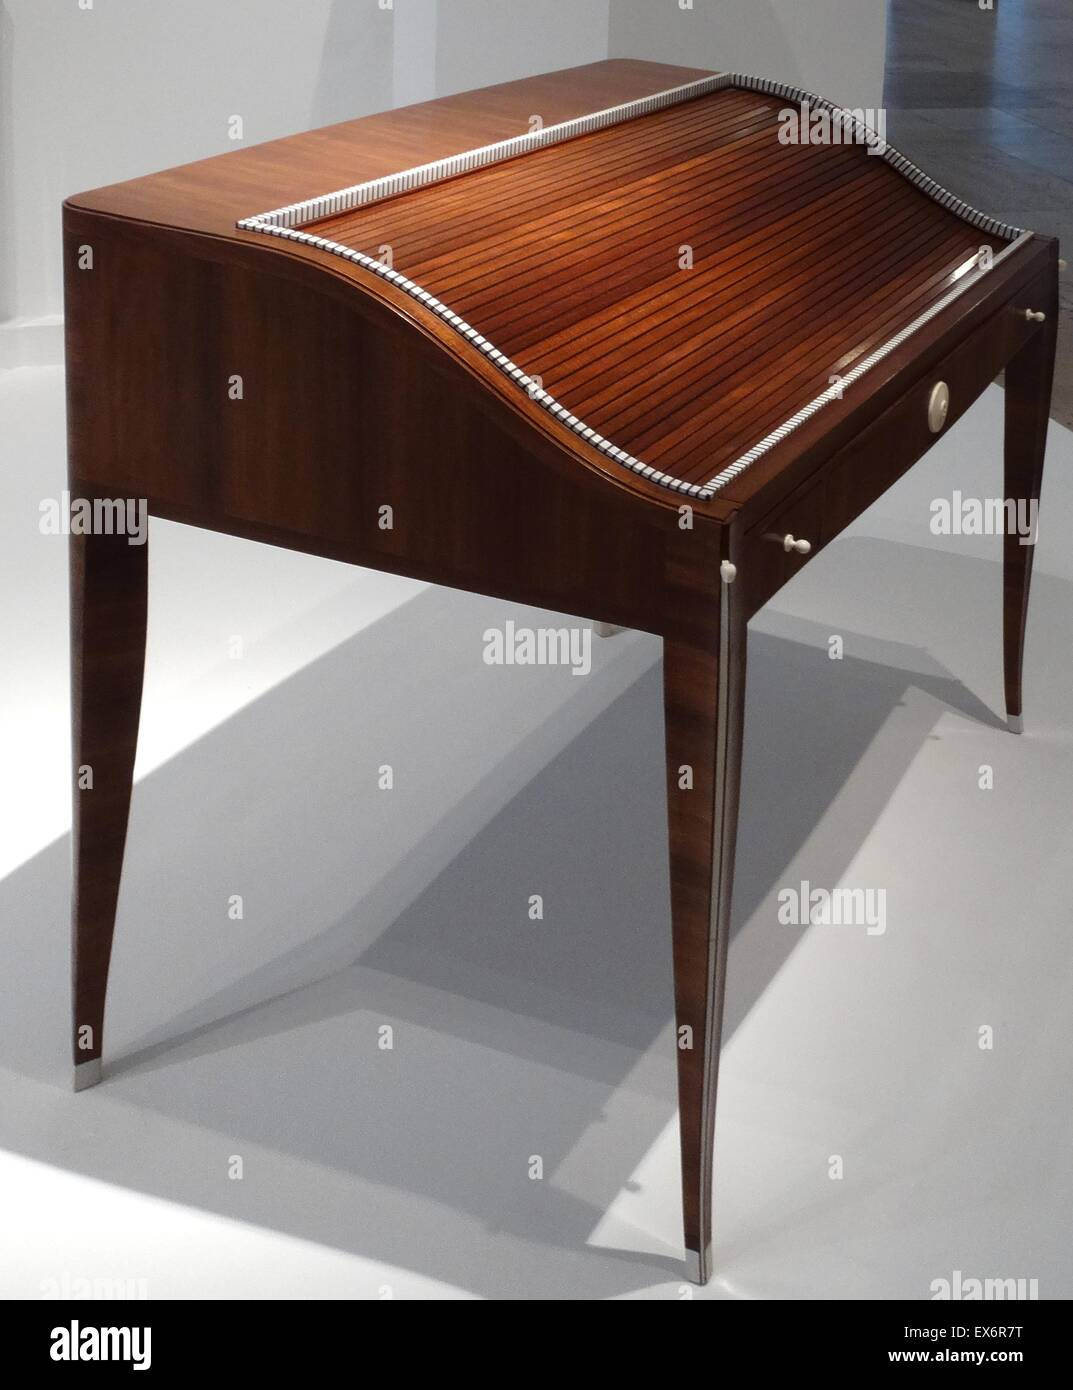 Art deco period furniture Simple Wood Office Desk Titled office Lady By Émilejacques Ruhlmann 18791933 French Designer Of Furniture And Interiors During French Art Deco Period Alamy Wood Office Desk Titled office Lady By Émilejacques Ruhlmann